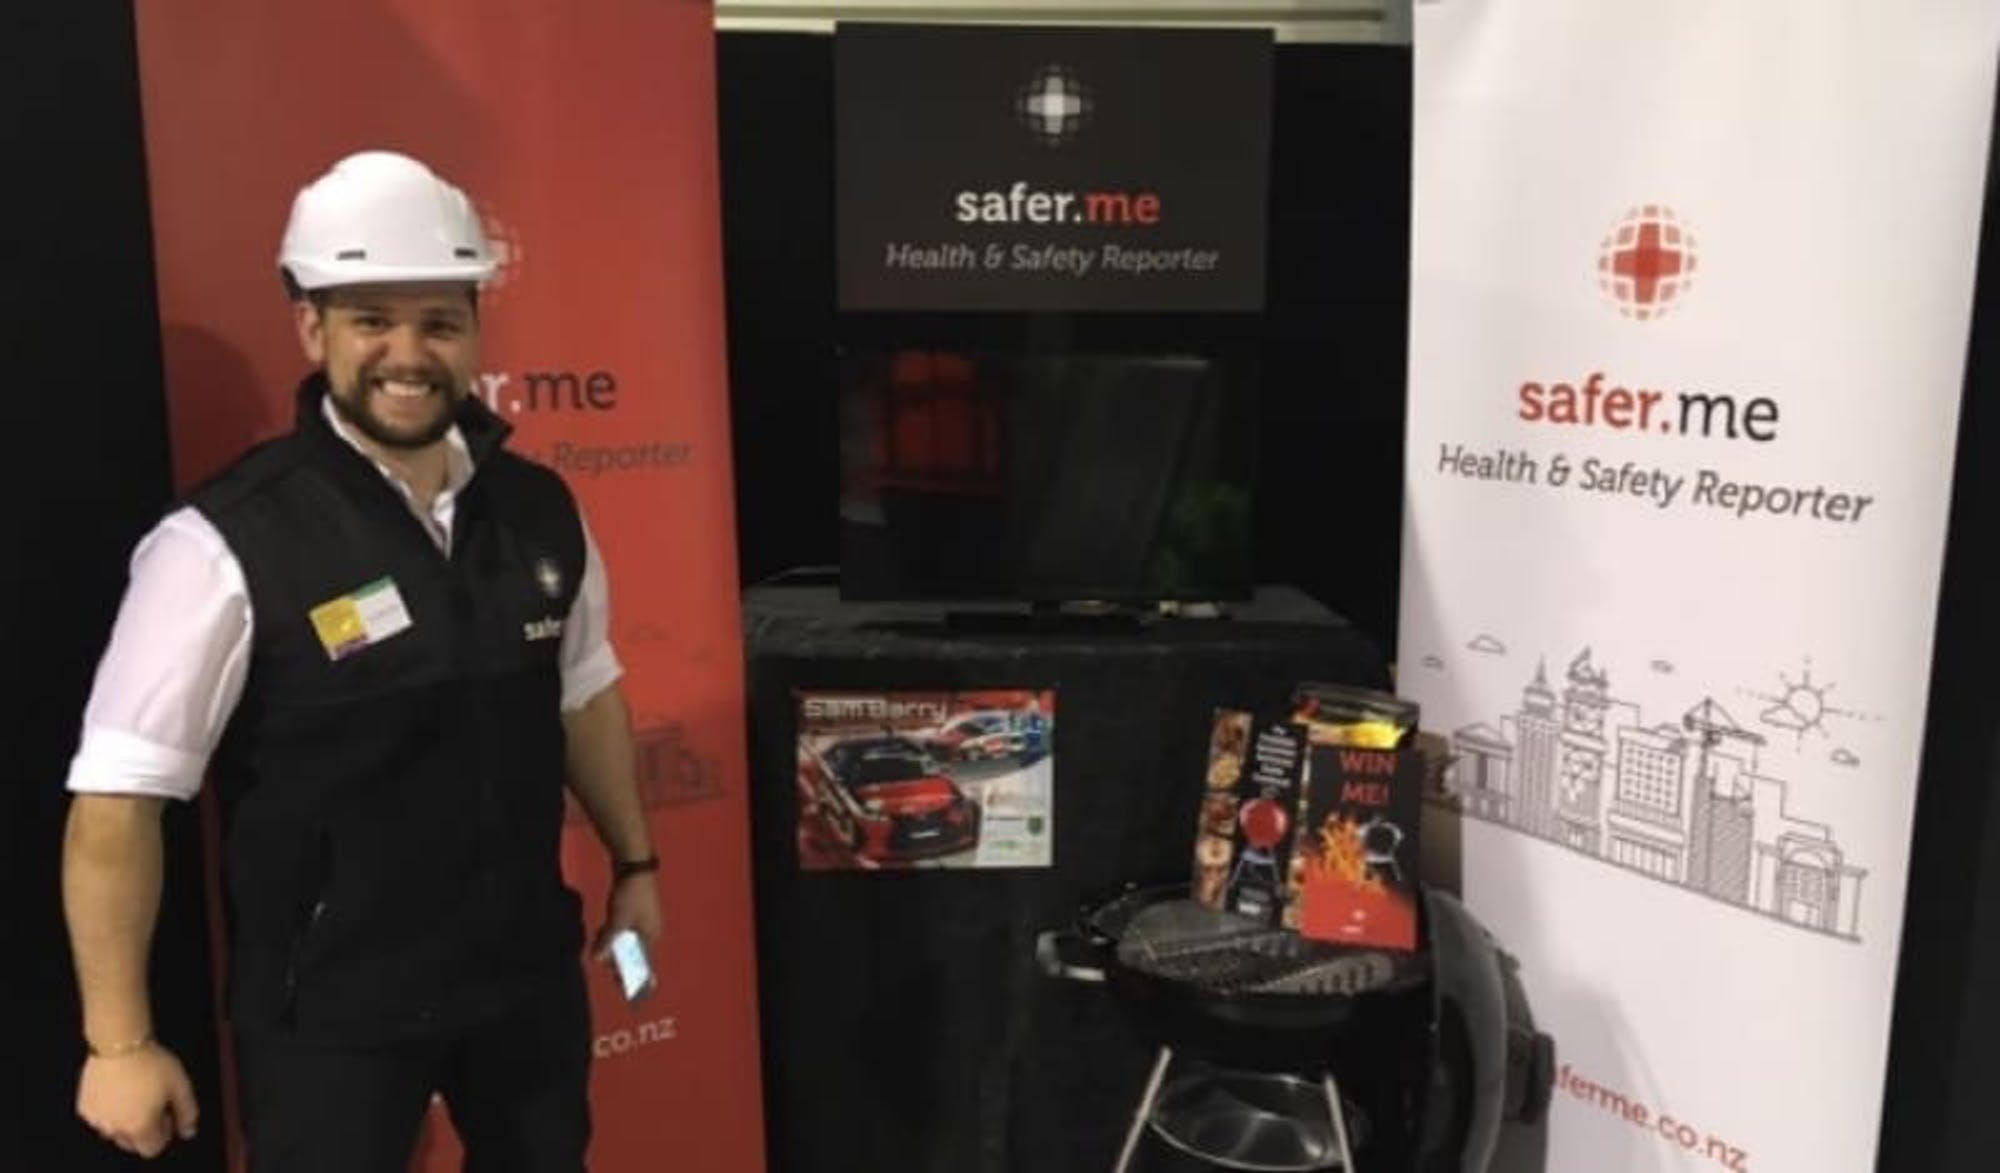 Making safety a priority for small businesses